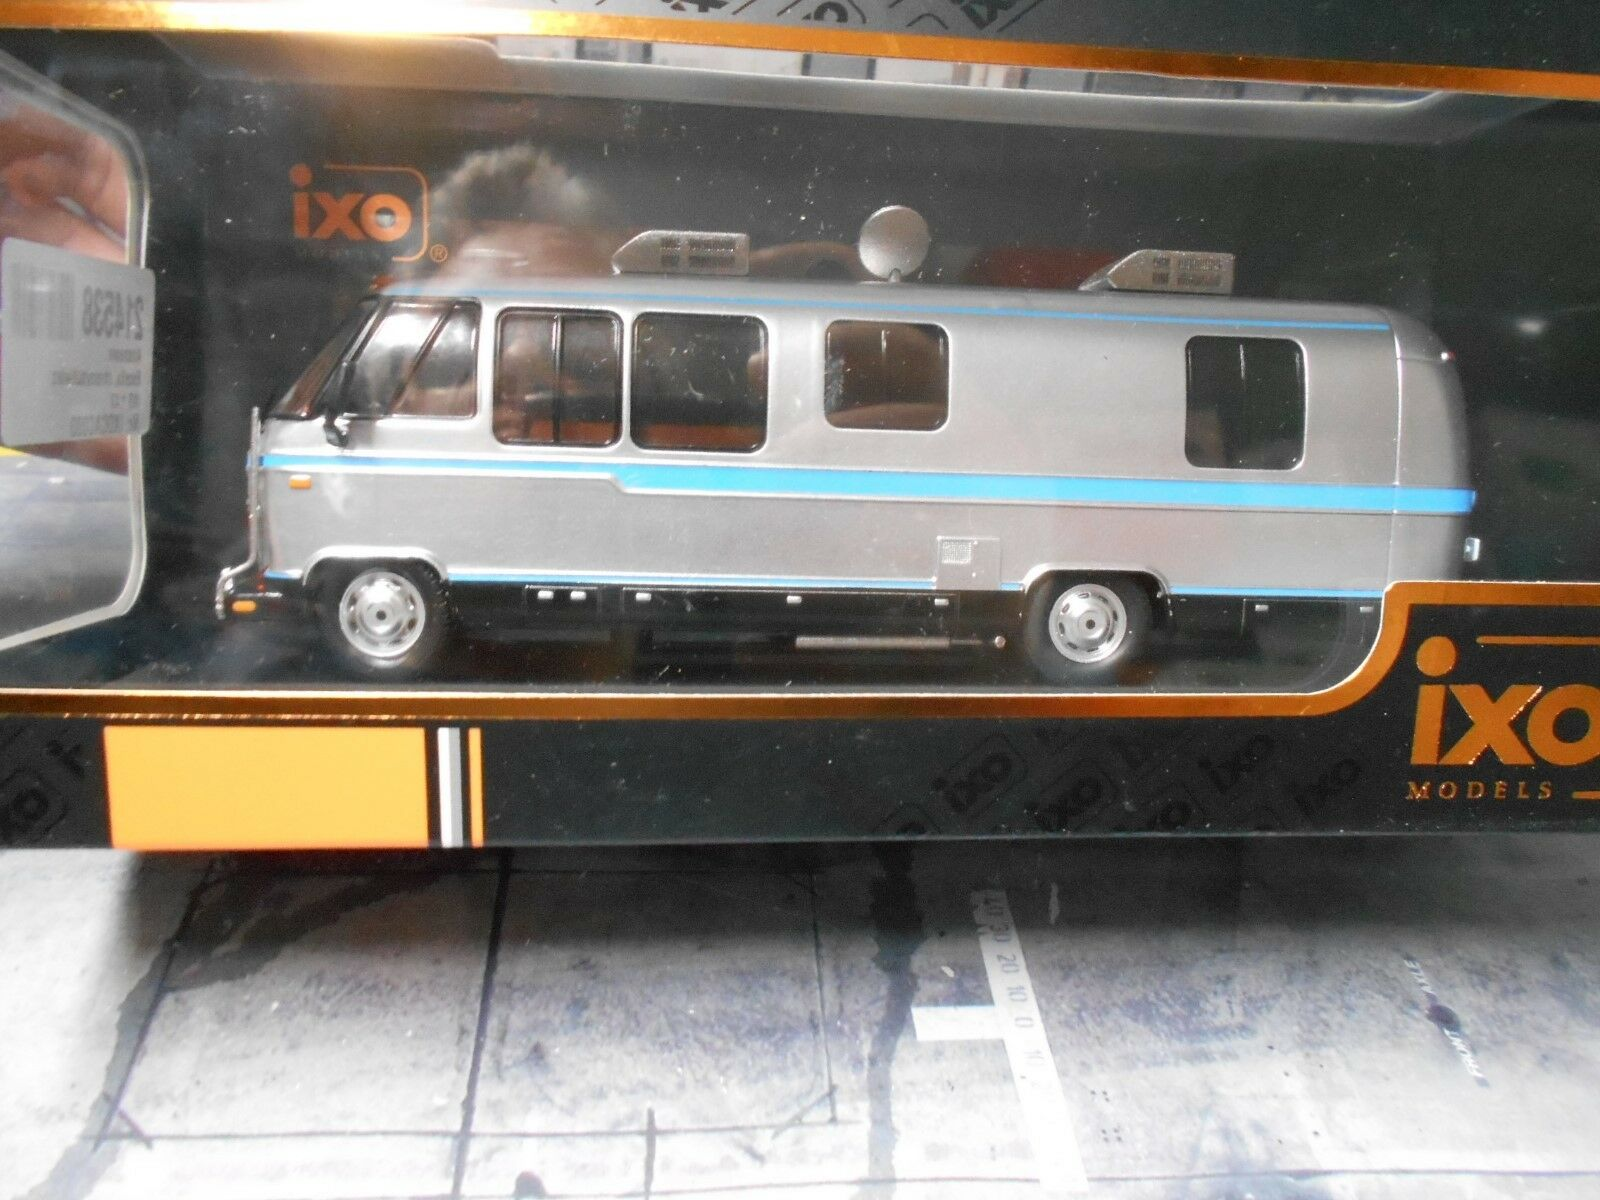 Airstream Excella Turbo 280 Motorhome 1981 Camper Camping Wohnmobil LKW IXO 1 43